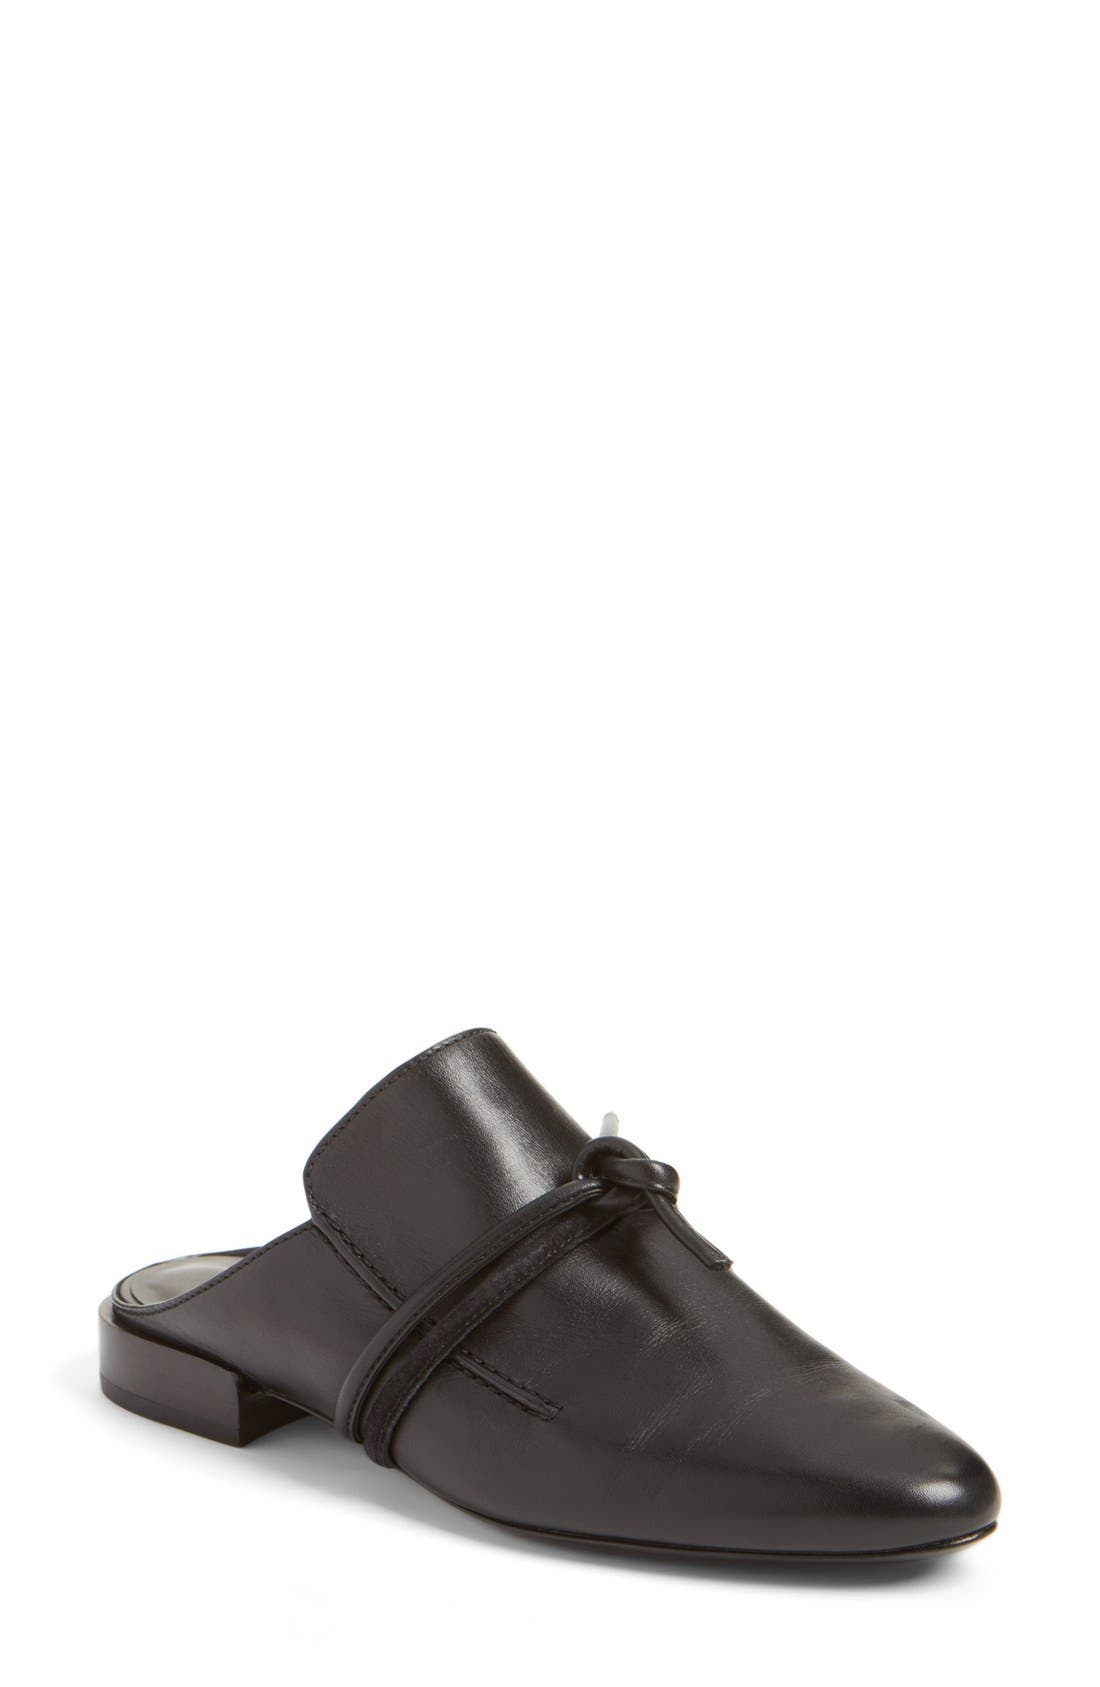 Alternate Image 1 Selected - 3.1 Phillip Lim 'Louie' Mule Loafer (Women)